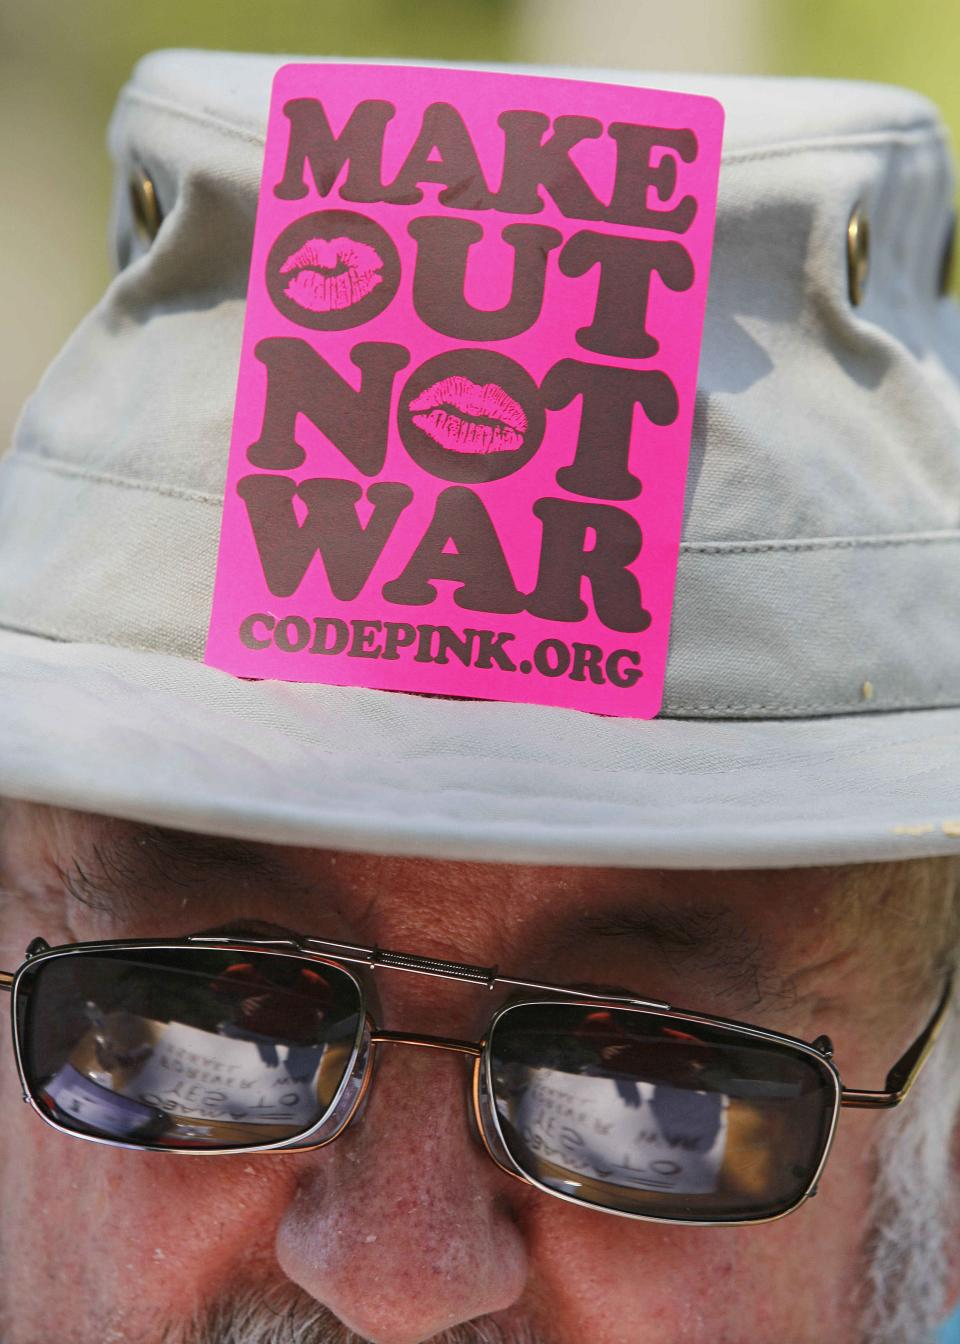 Bill Fisk, of Henderson, N.C. works on protest signs during a rally, Sunday, Sept. 2, 2012, in Charlotte, N.C. Demonstrators are protesting and marching before the Democratic National Convention. (AP Photo/Gerry Broome)